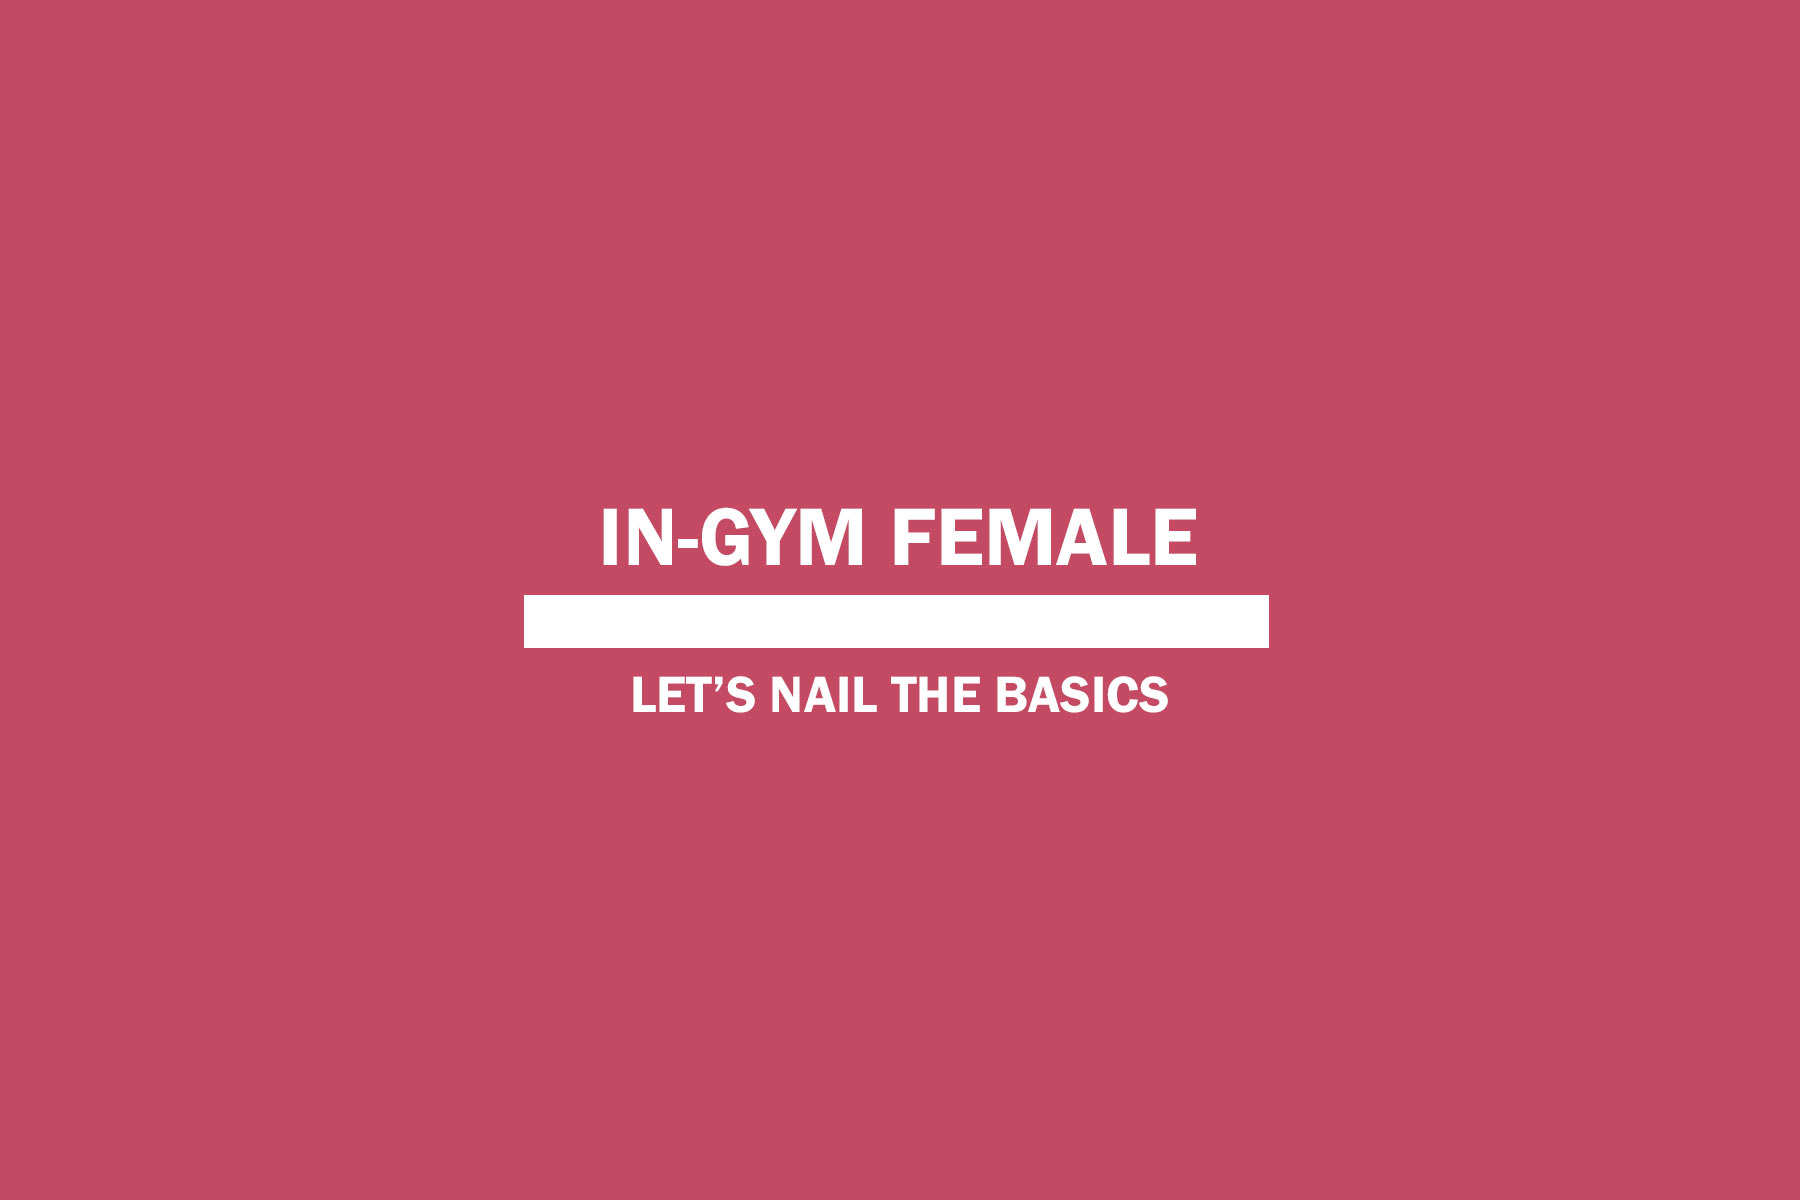 In-gym Female 7th of October to 28th of October